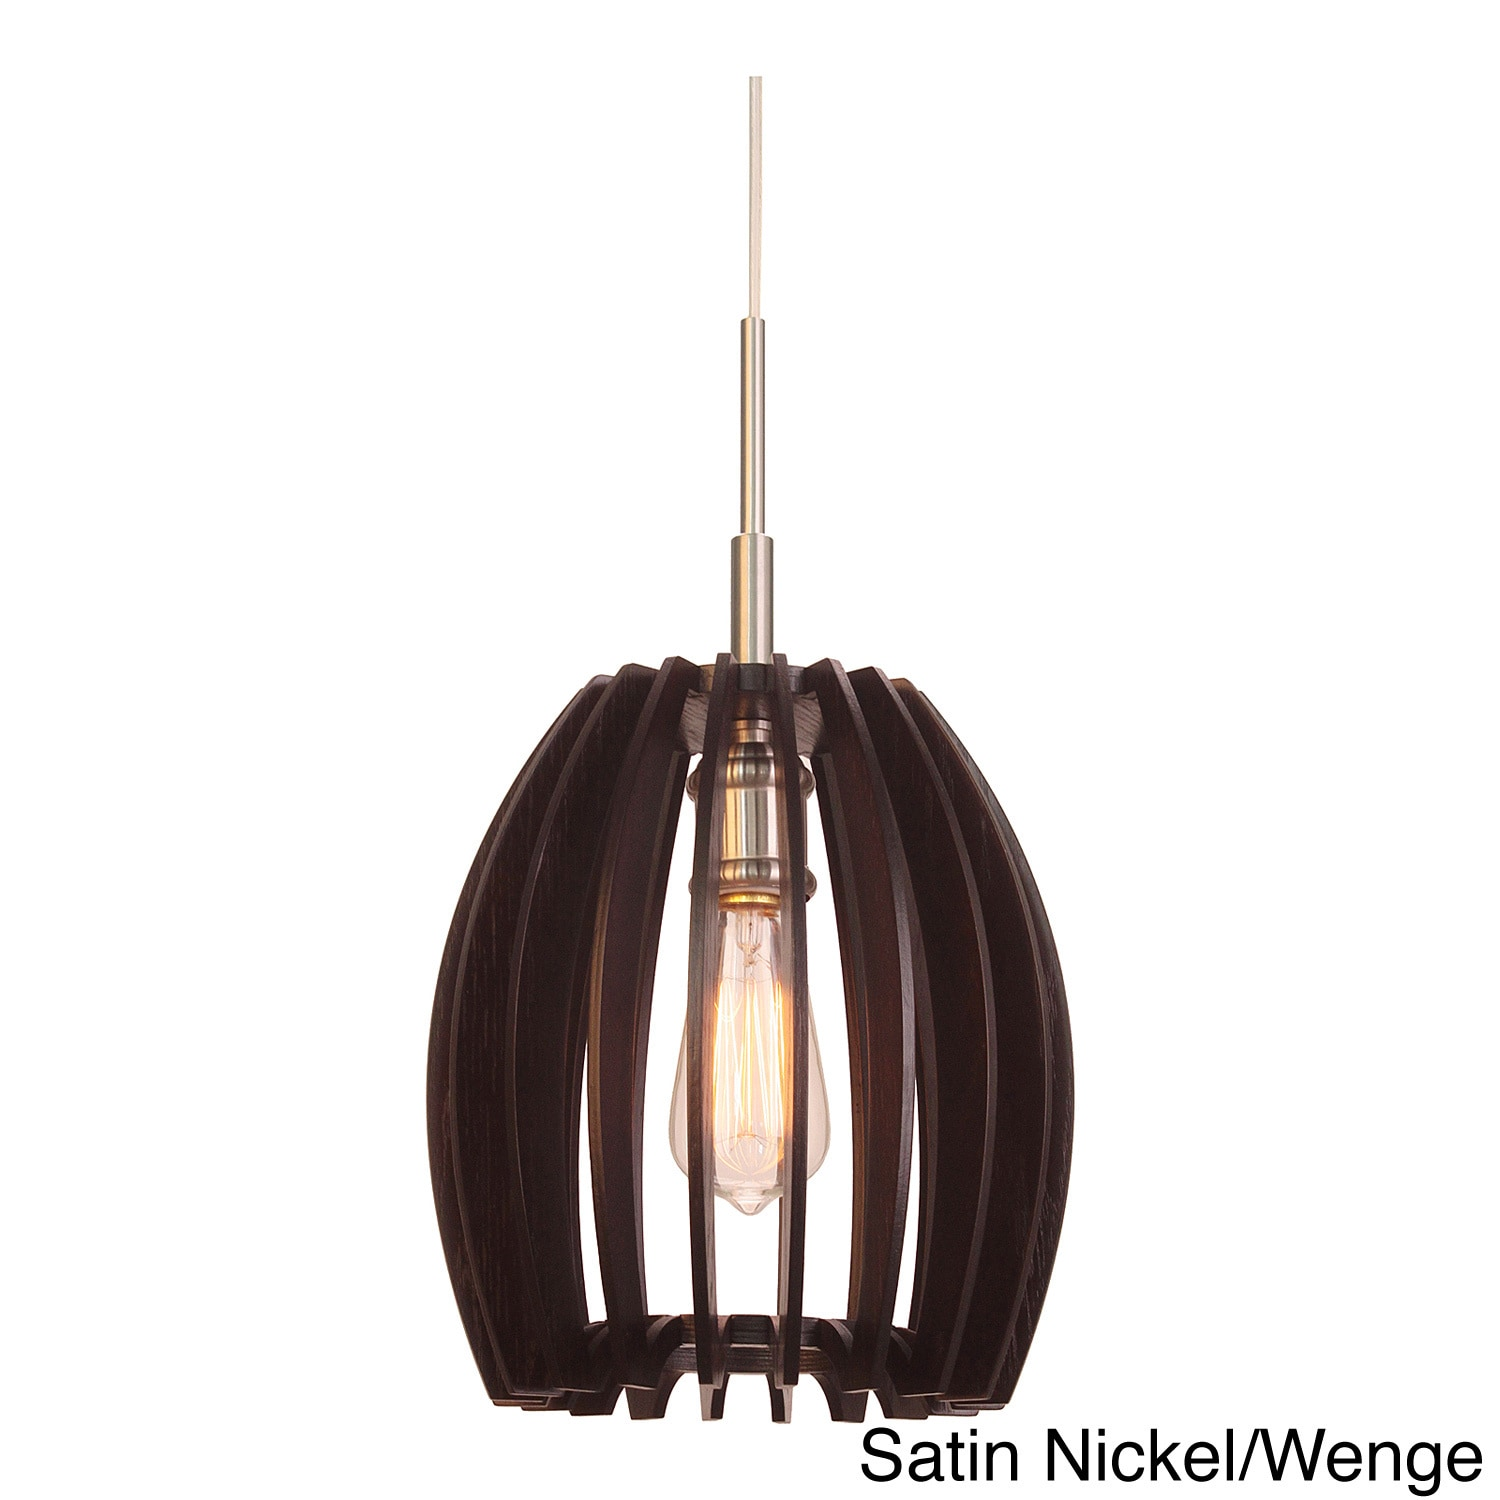 Canopy 1 light crescendo wood slat pendant free shipping today canopy 1 light crescendo wood slat pendant free shipping today overstock 15685871 arubaitofo Images